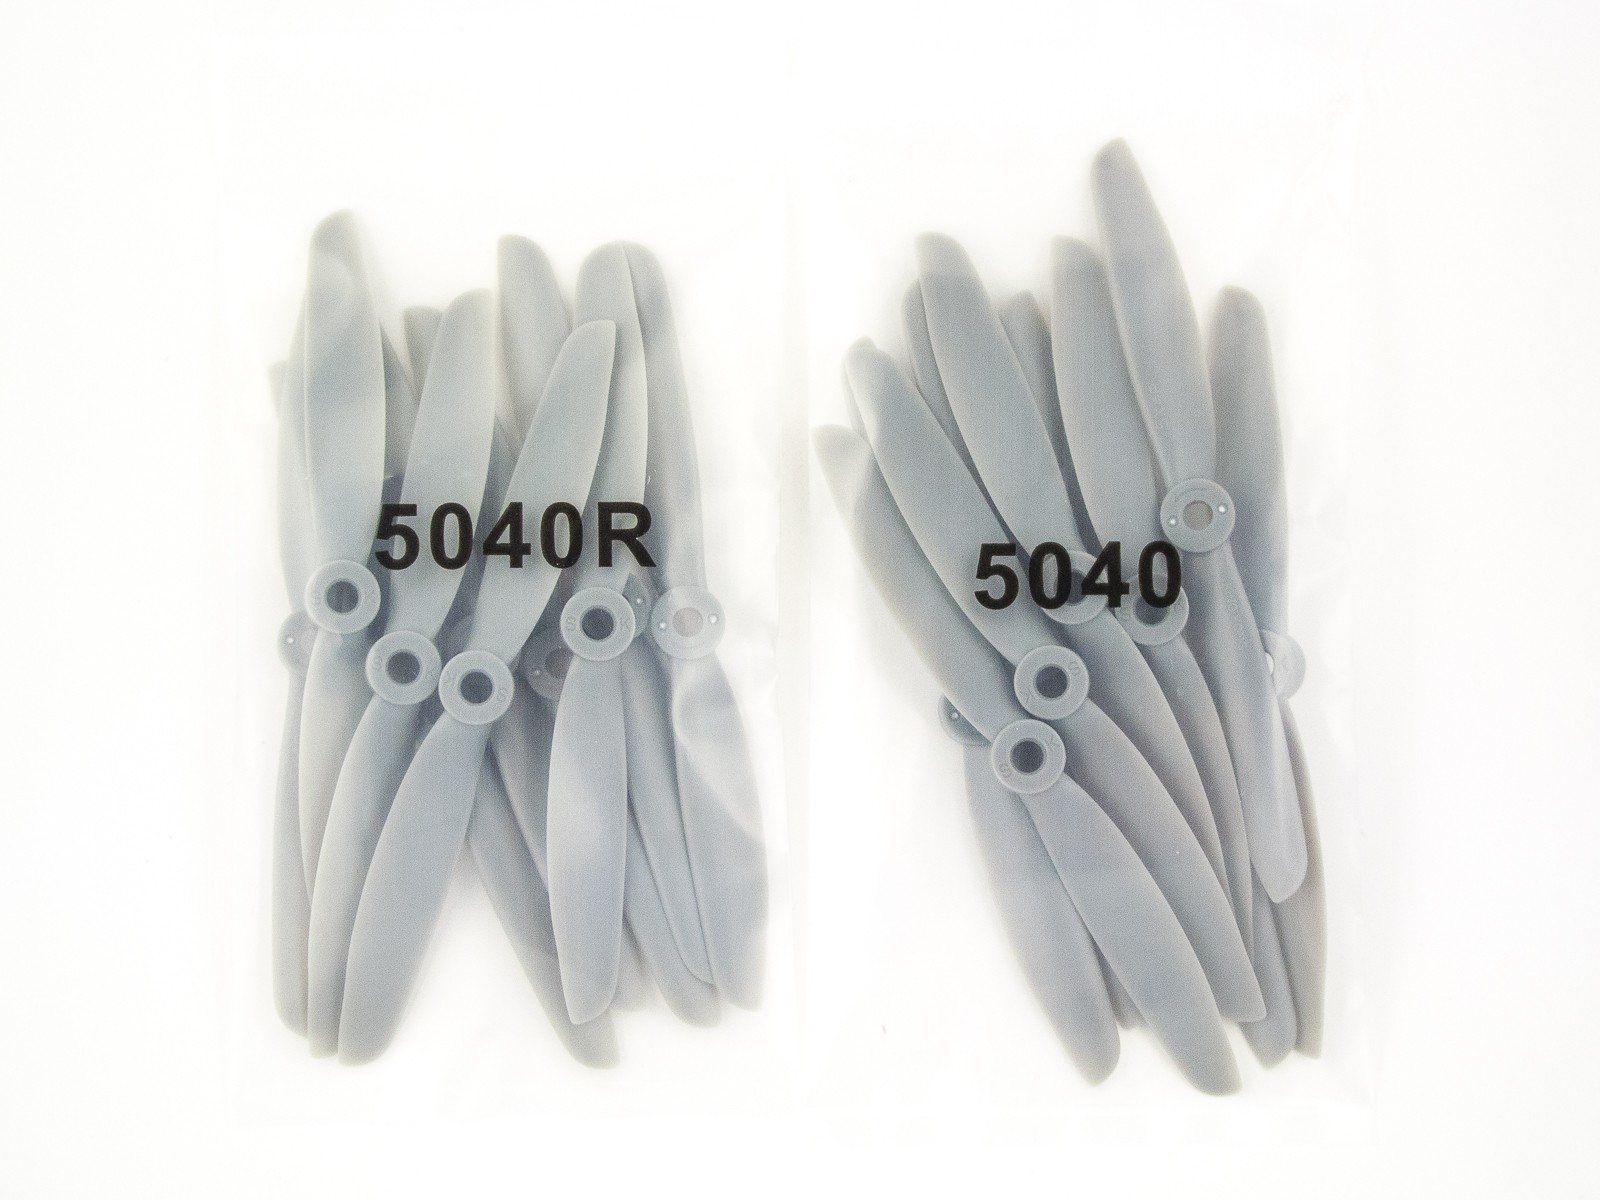 20x Kingkong 5040 propellers CW + CCW gray